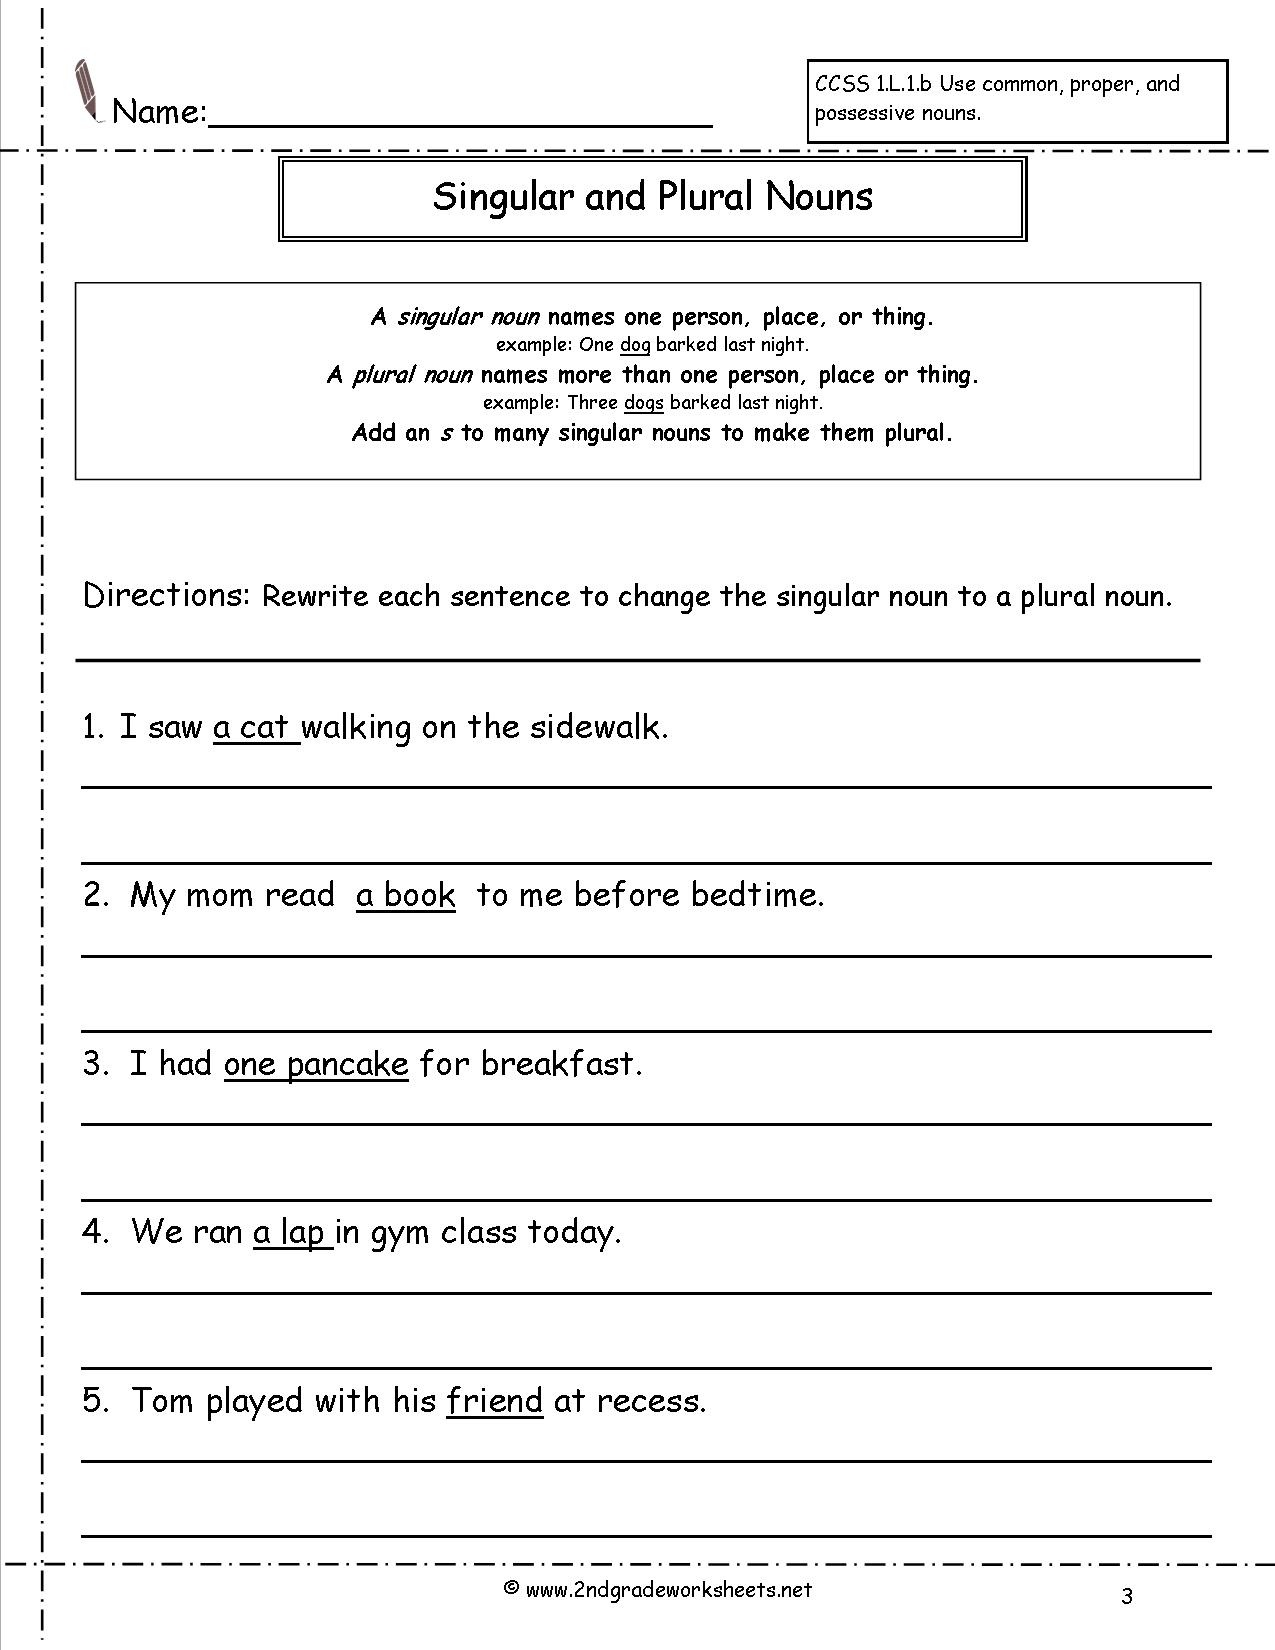 Singular And Plural Nouns Worksheets - Free Printable Making Change Worksheets